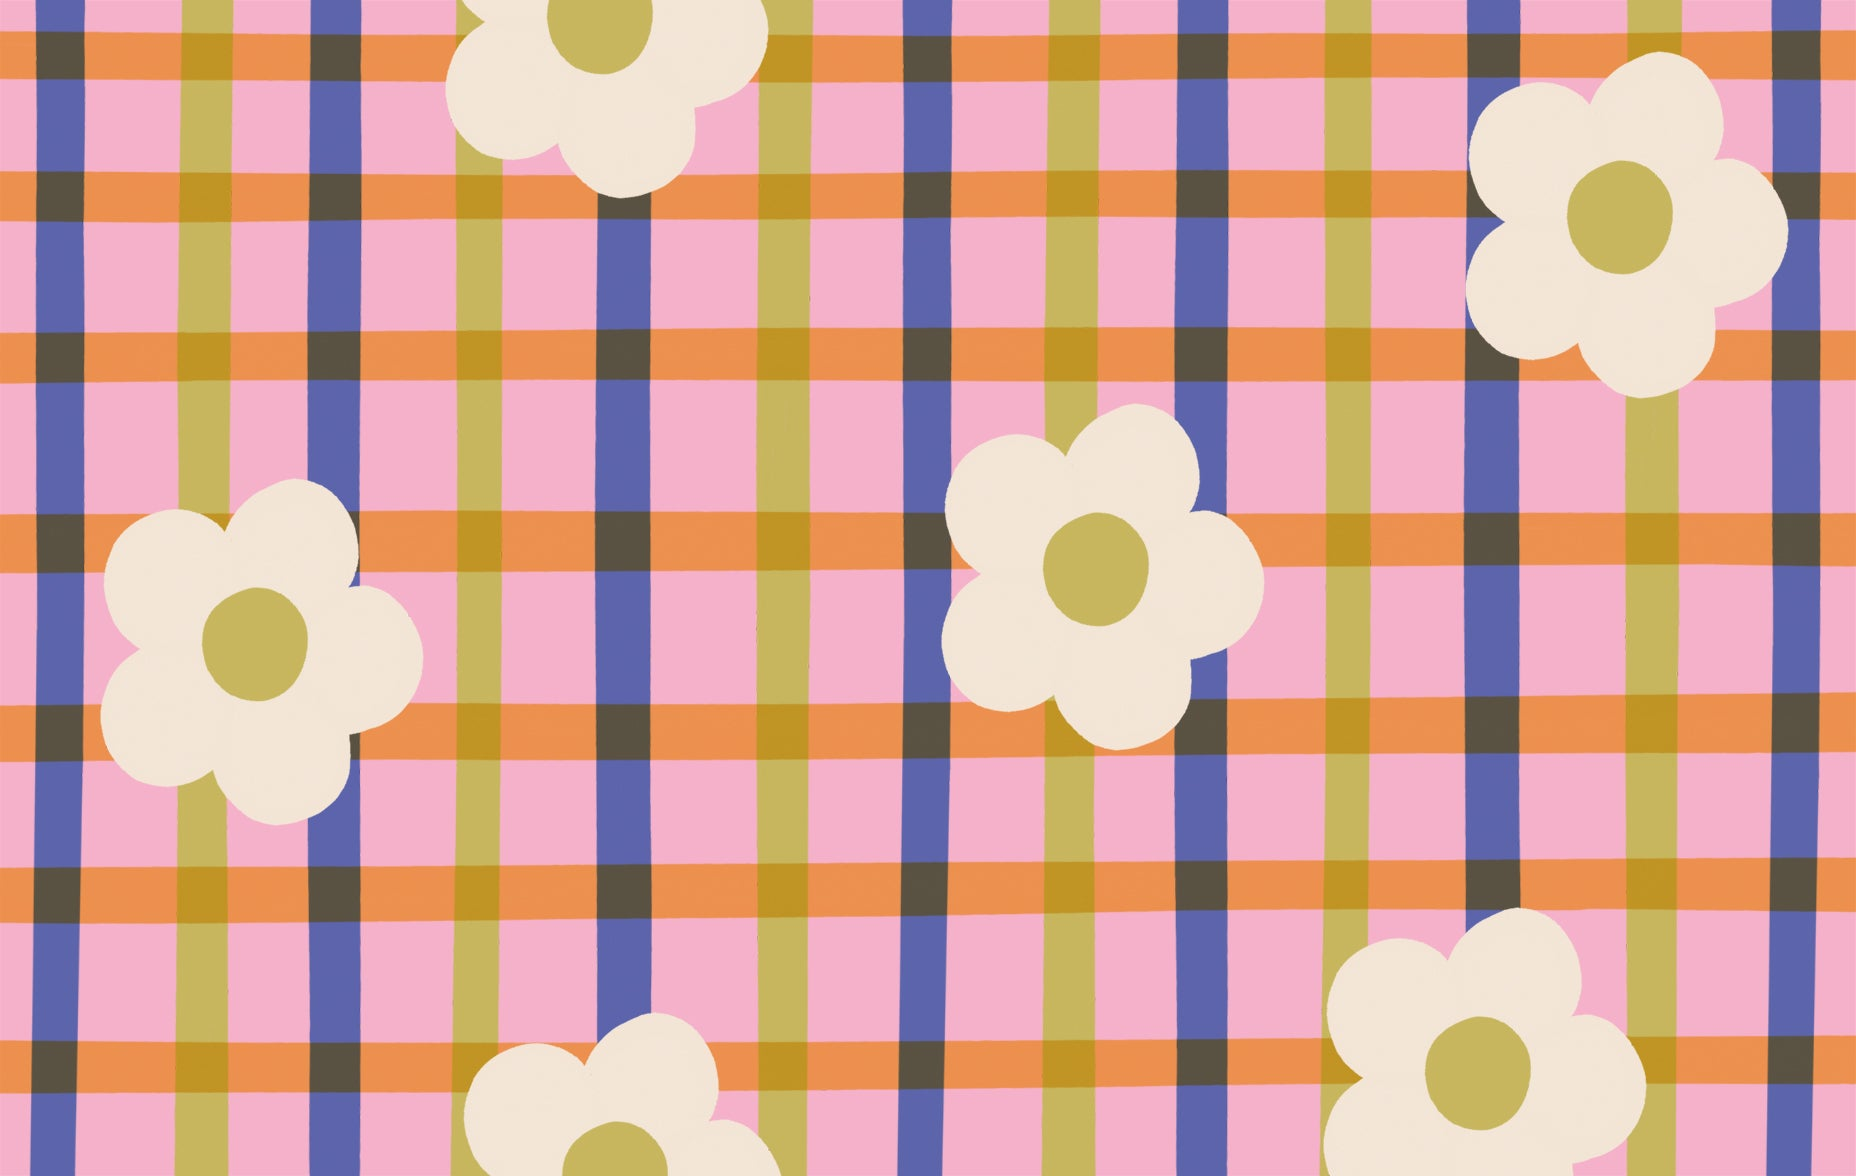 Daisy gingham HD free desktop wallpaper download | Raspberry Blossom